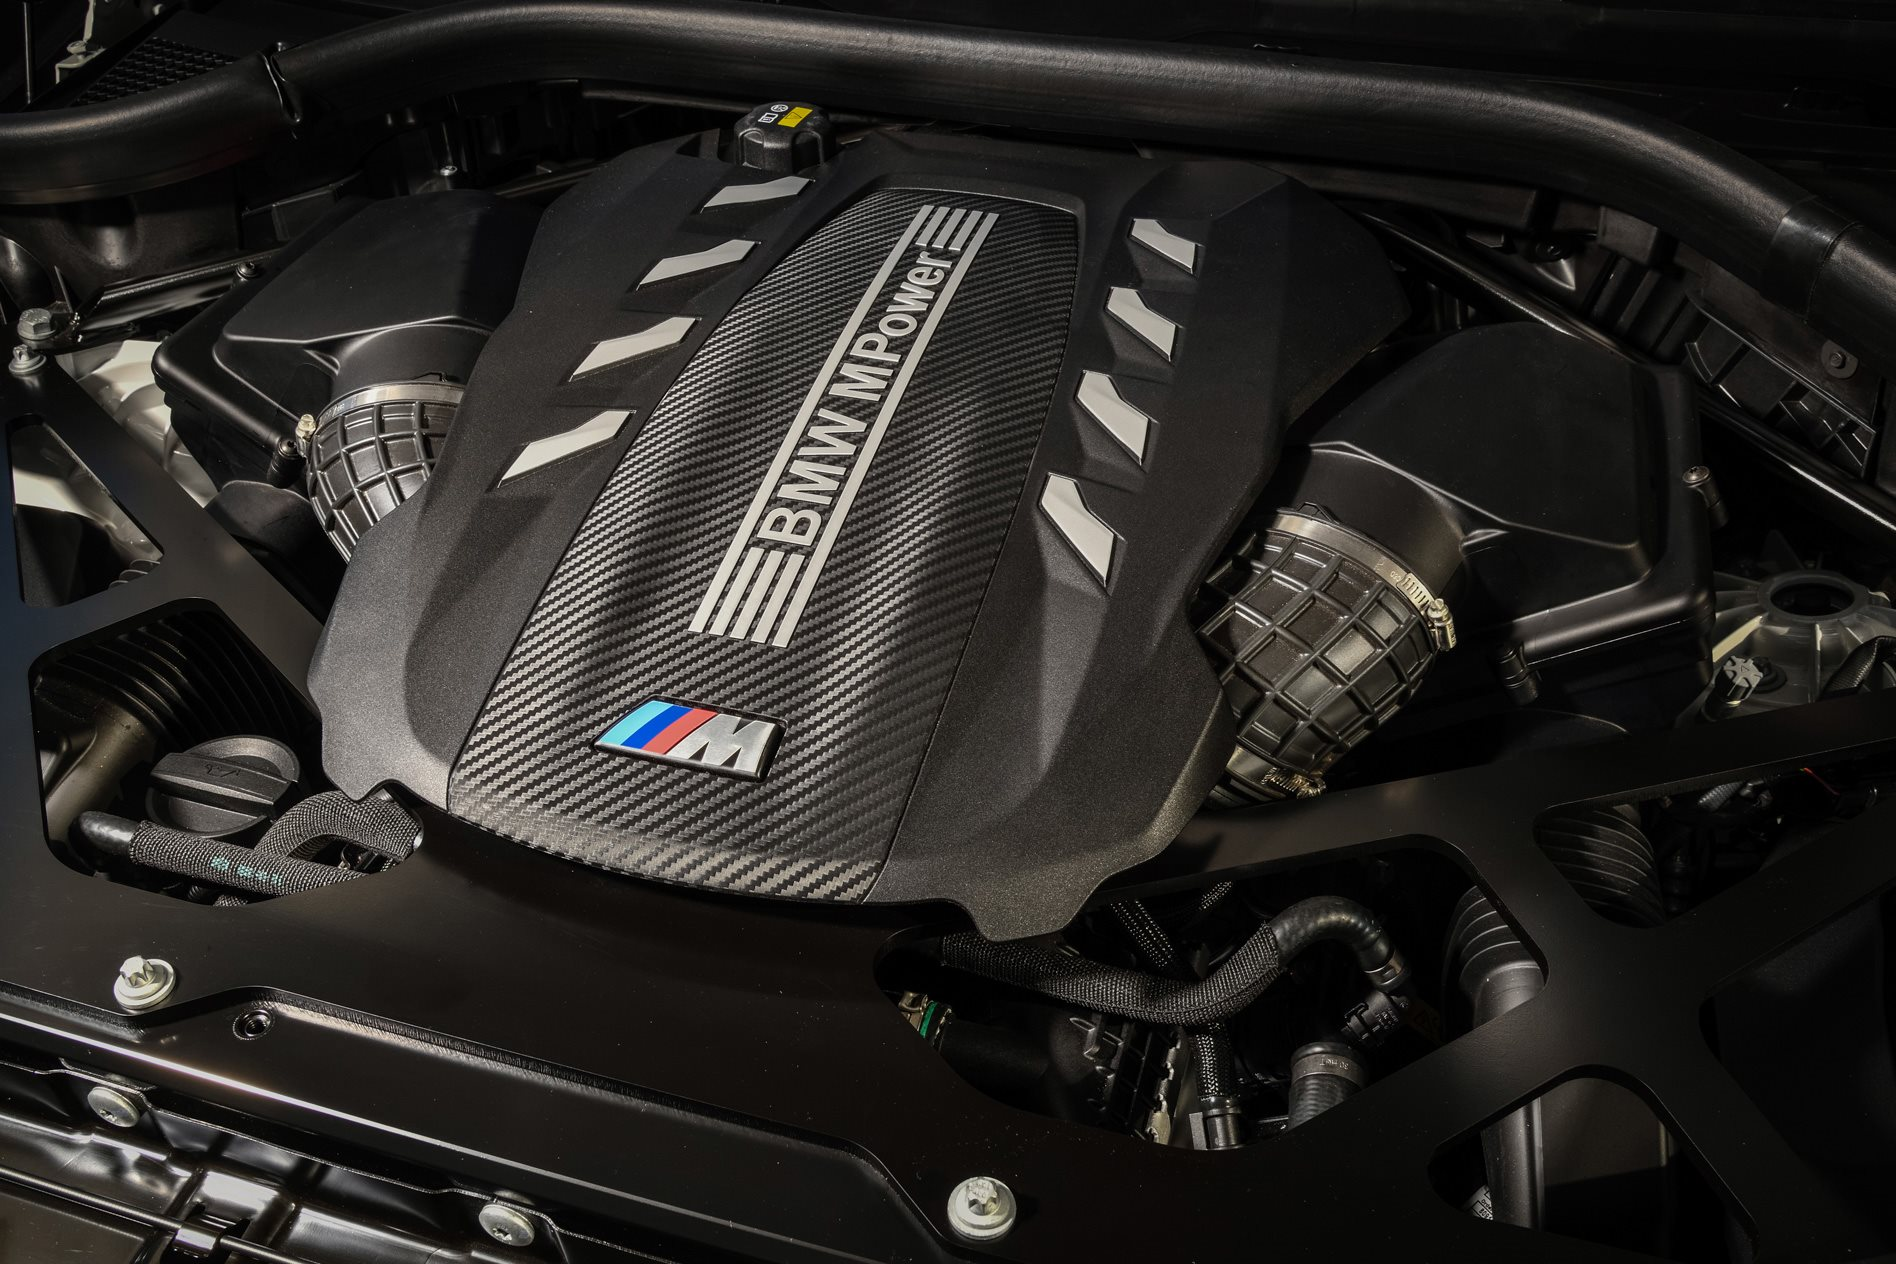 V8 Engines Are Safe For Now Says Bmw